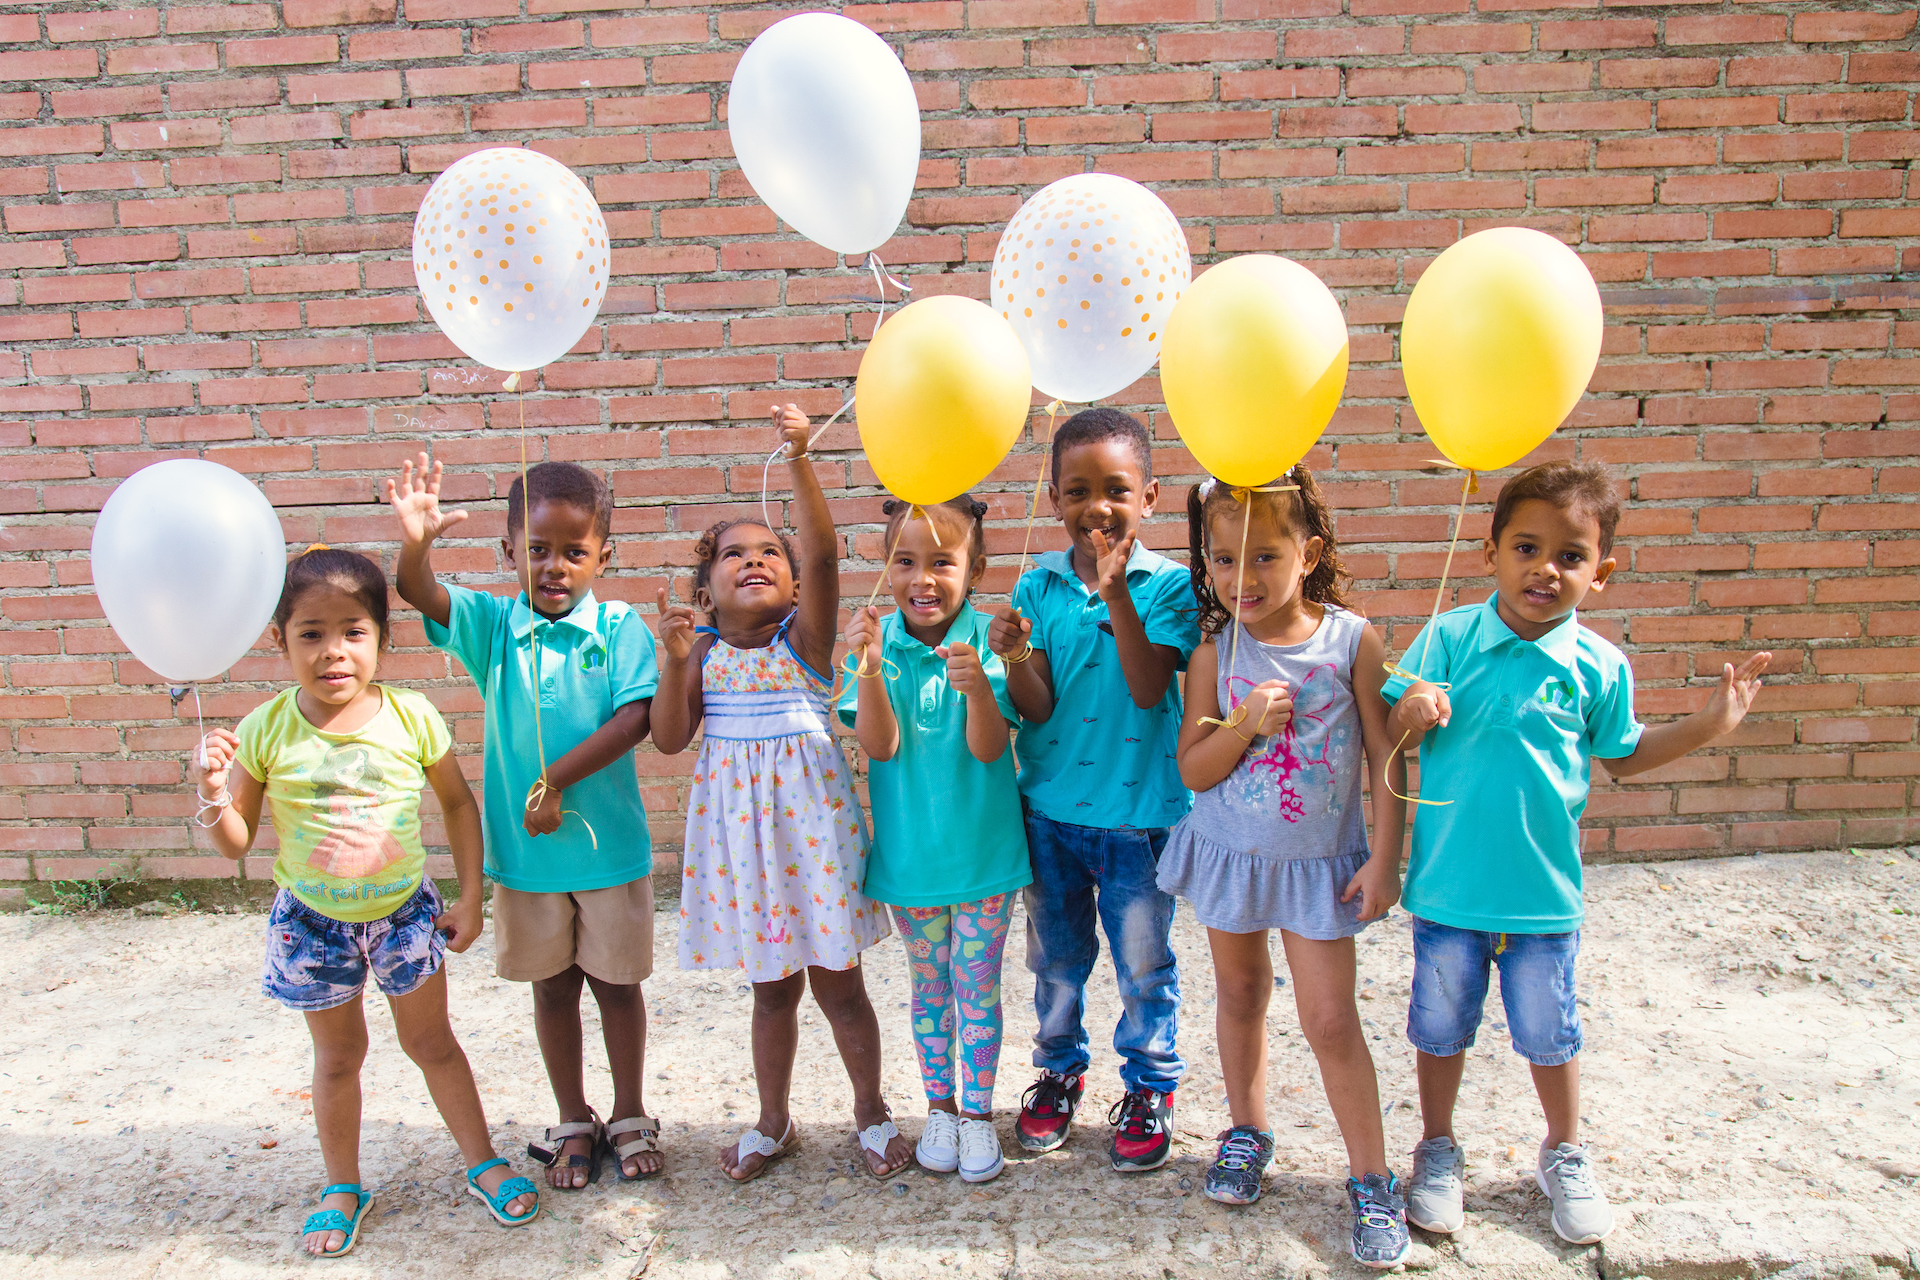 A group of children standing in a row holding yellow and white balloons.